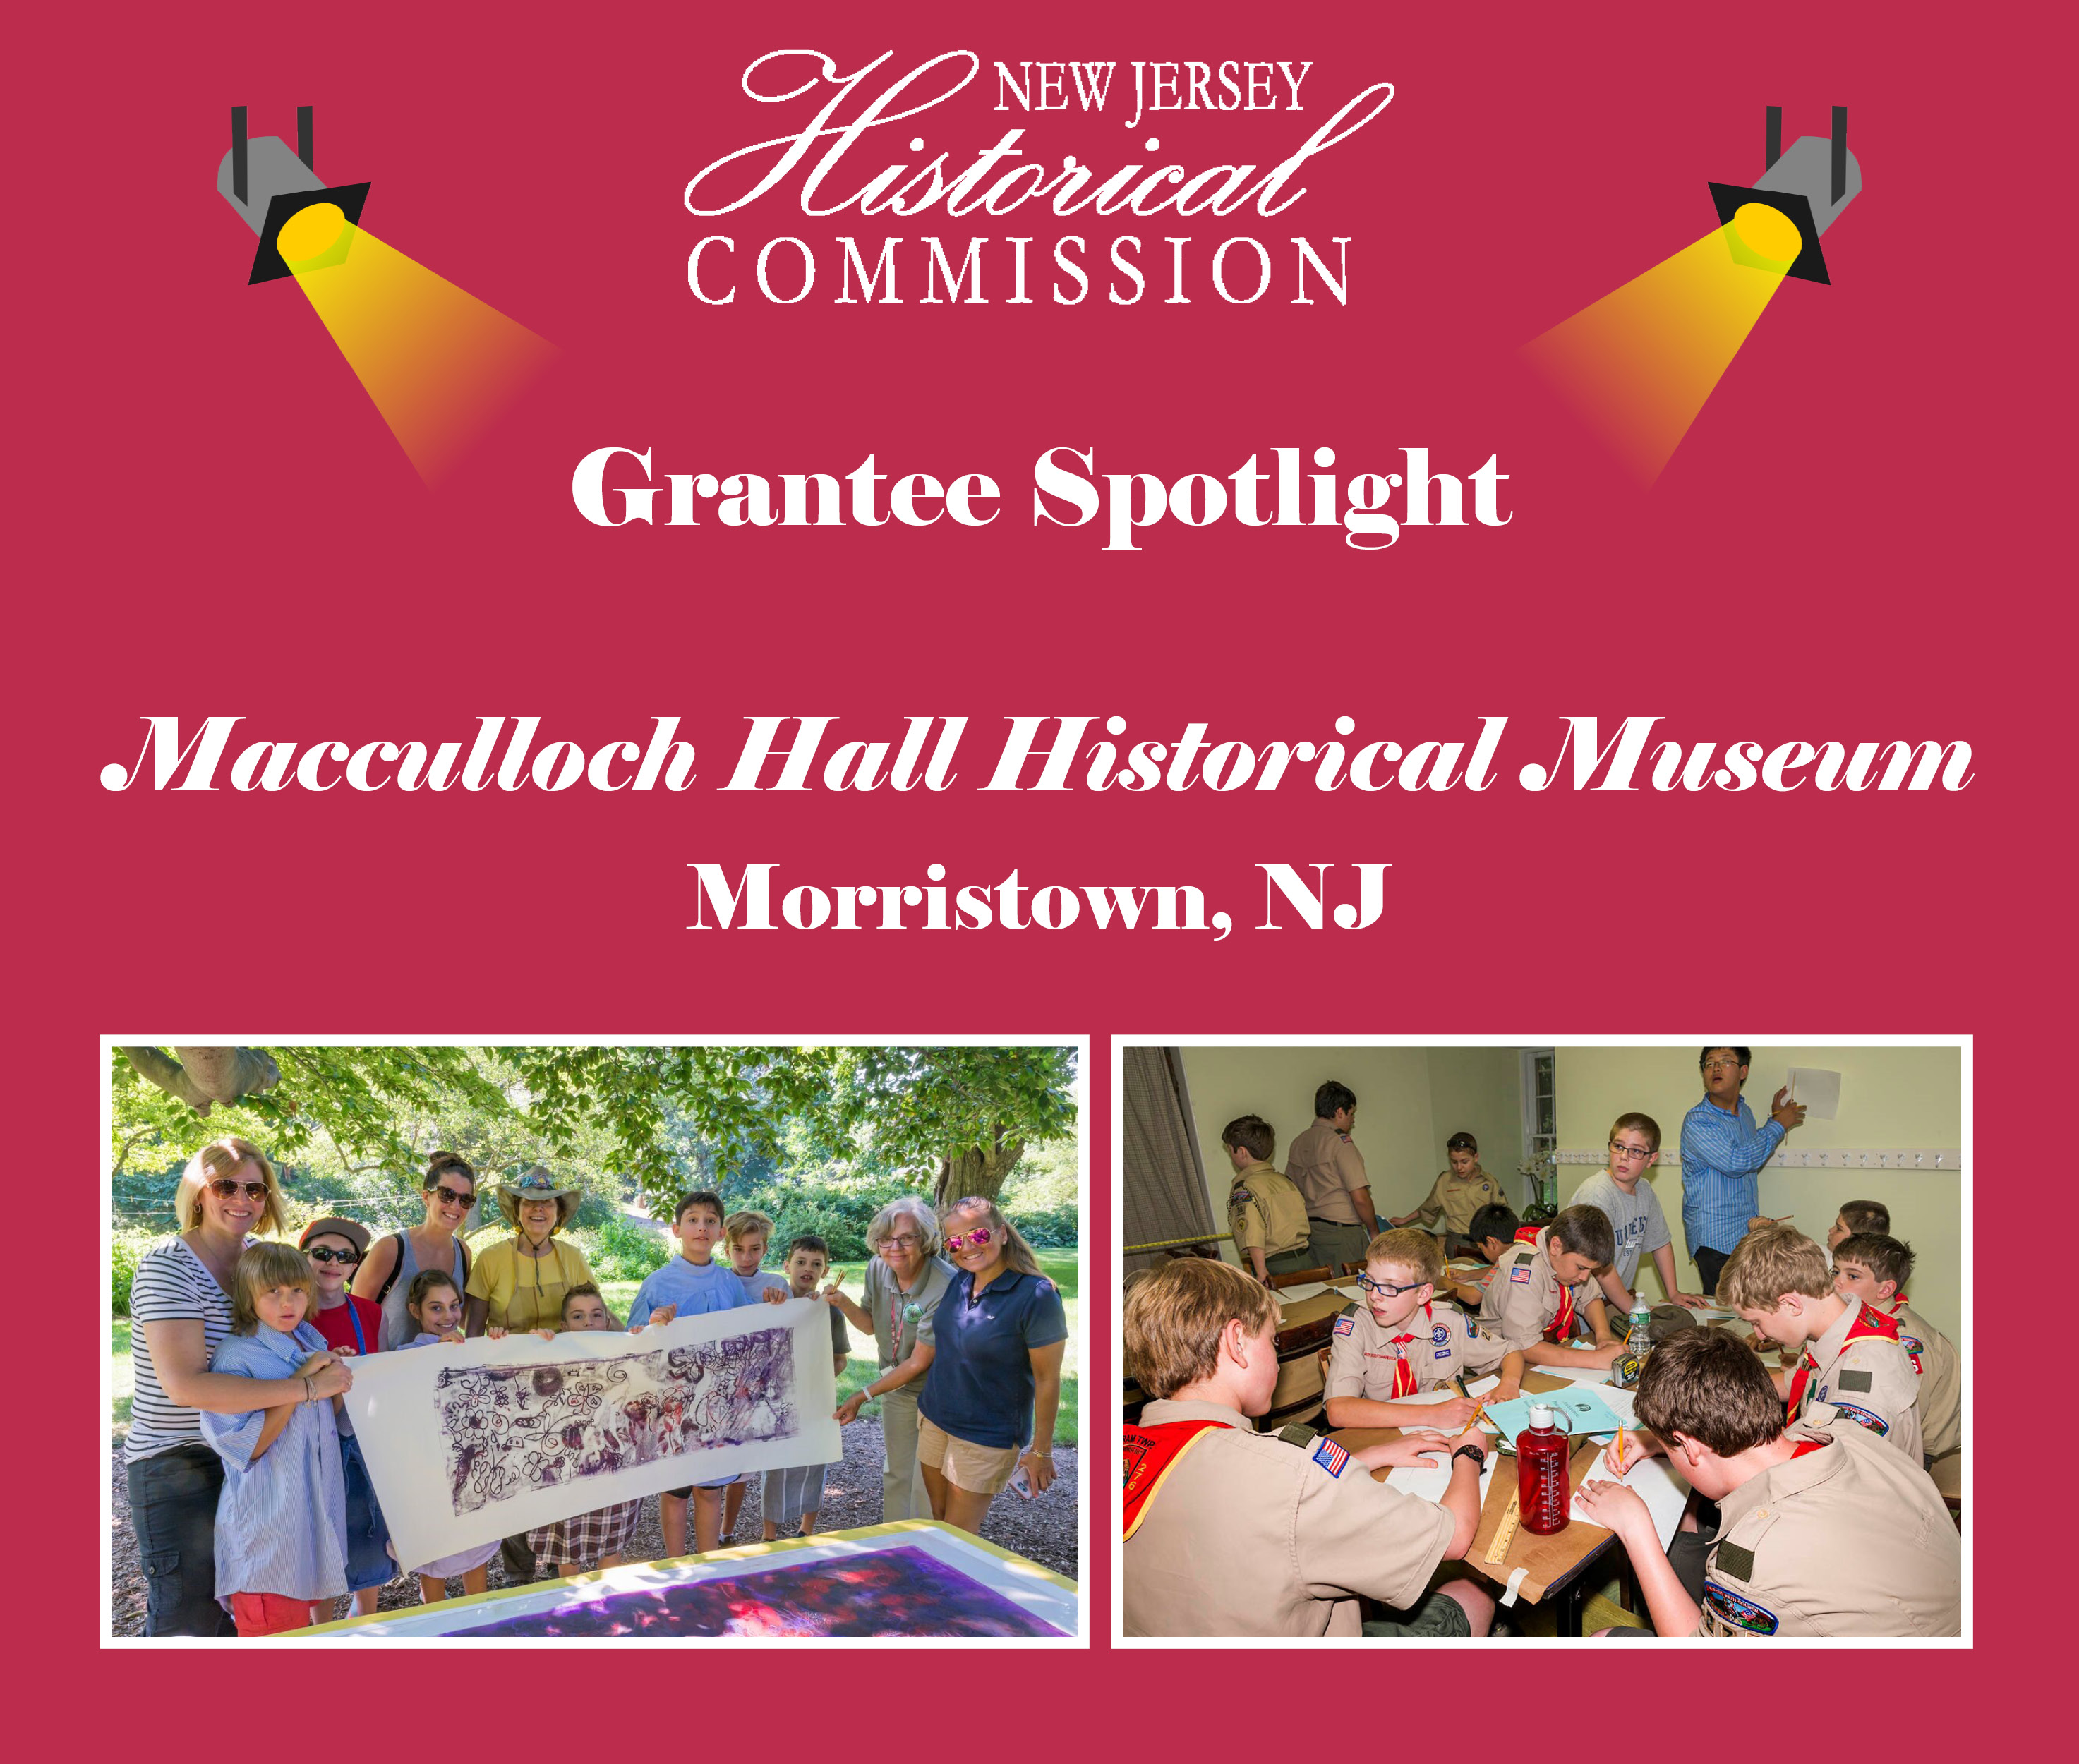 New Jersey Historical Commission (NJHC) Grantee Spotlight: Macculloch Hall Historical Museum